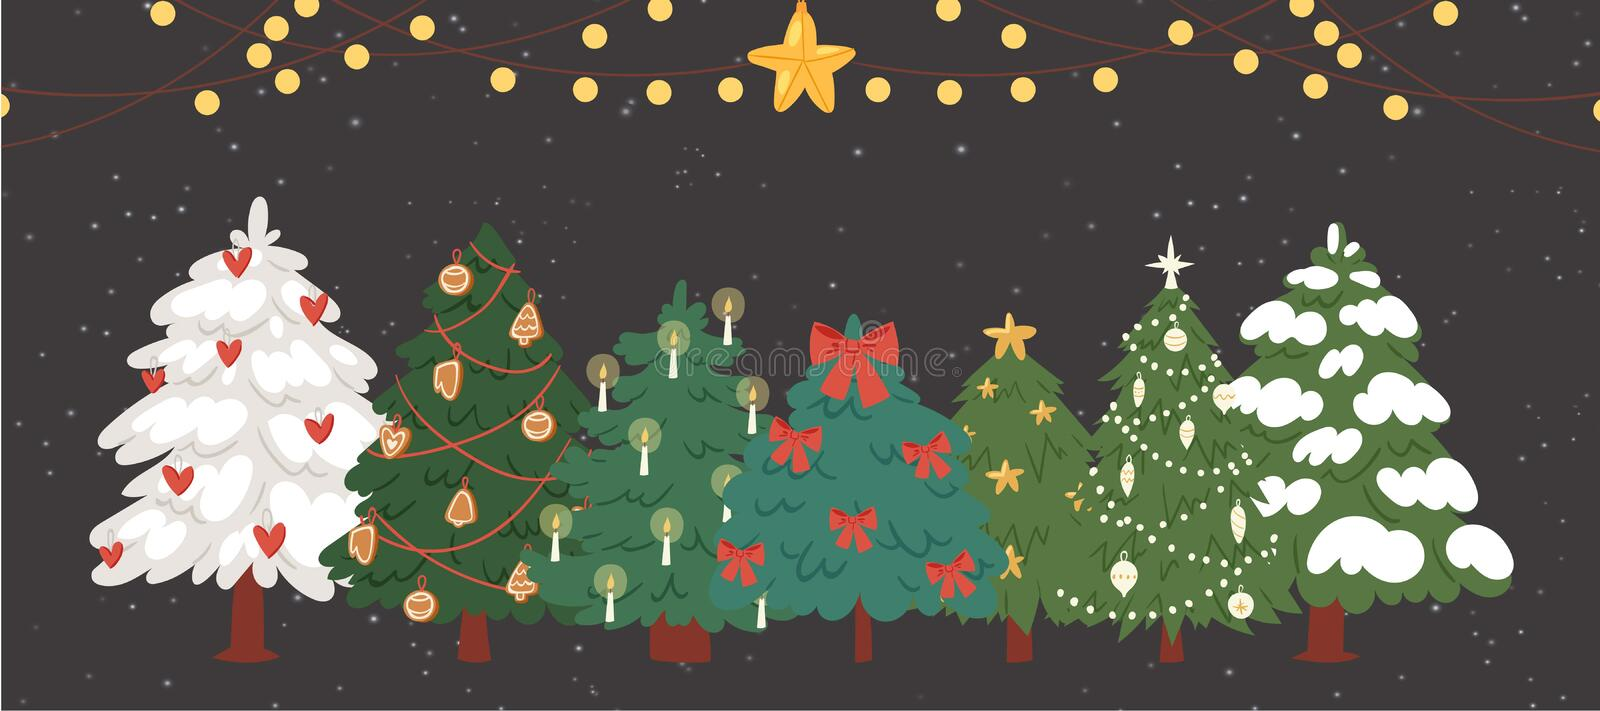 Christmas trees, firs with garlands and lights vector illustration. Winter holiday background. Christmas trees with snow stock illustration